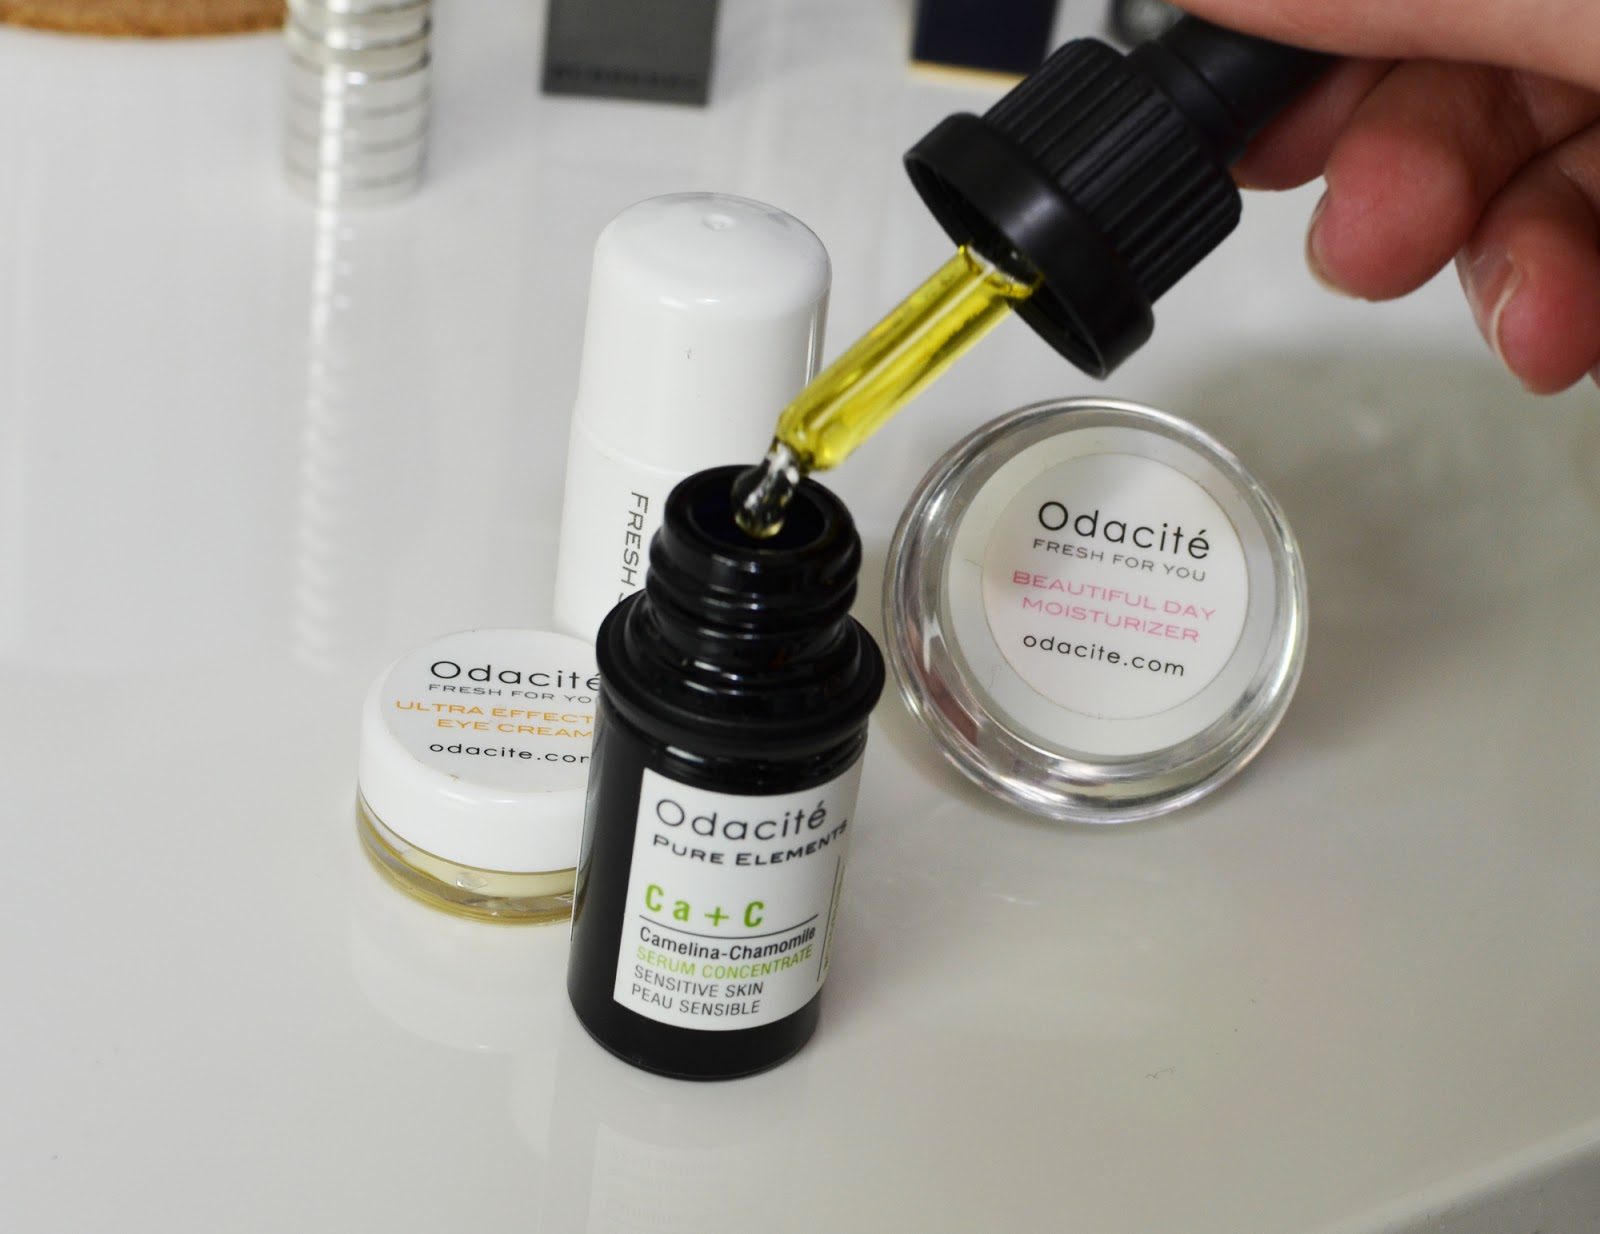 Odacité's Camelina-Chamomile Serum Concentrate for Sensitive Skin.